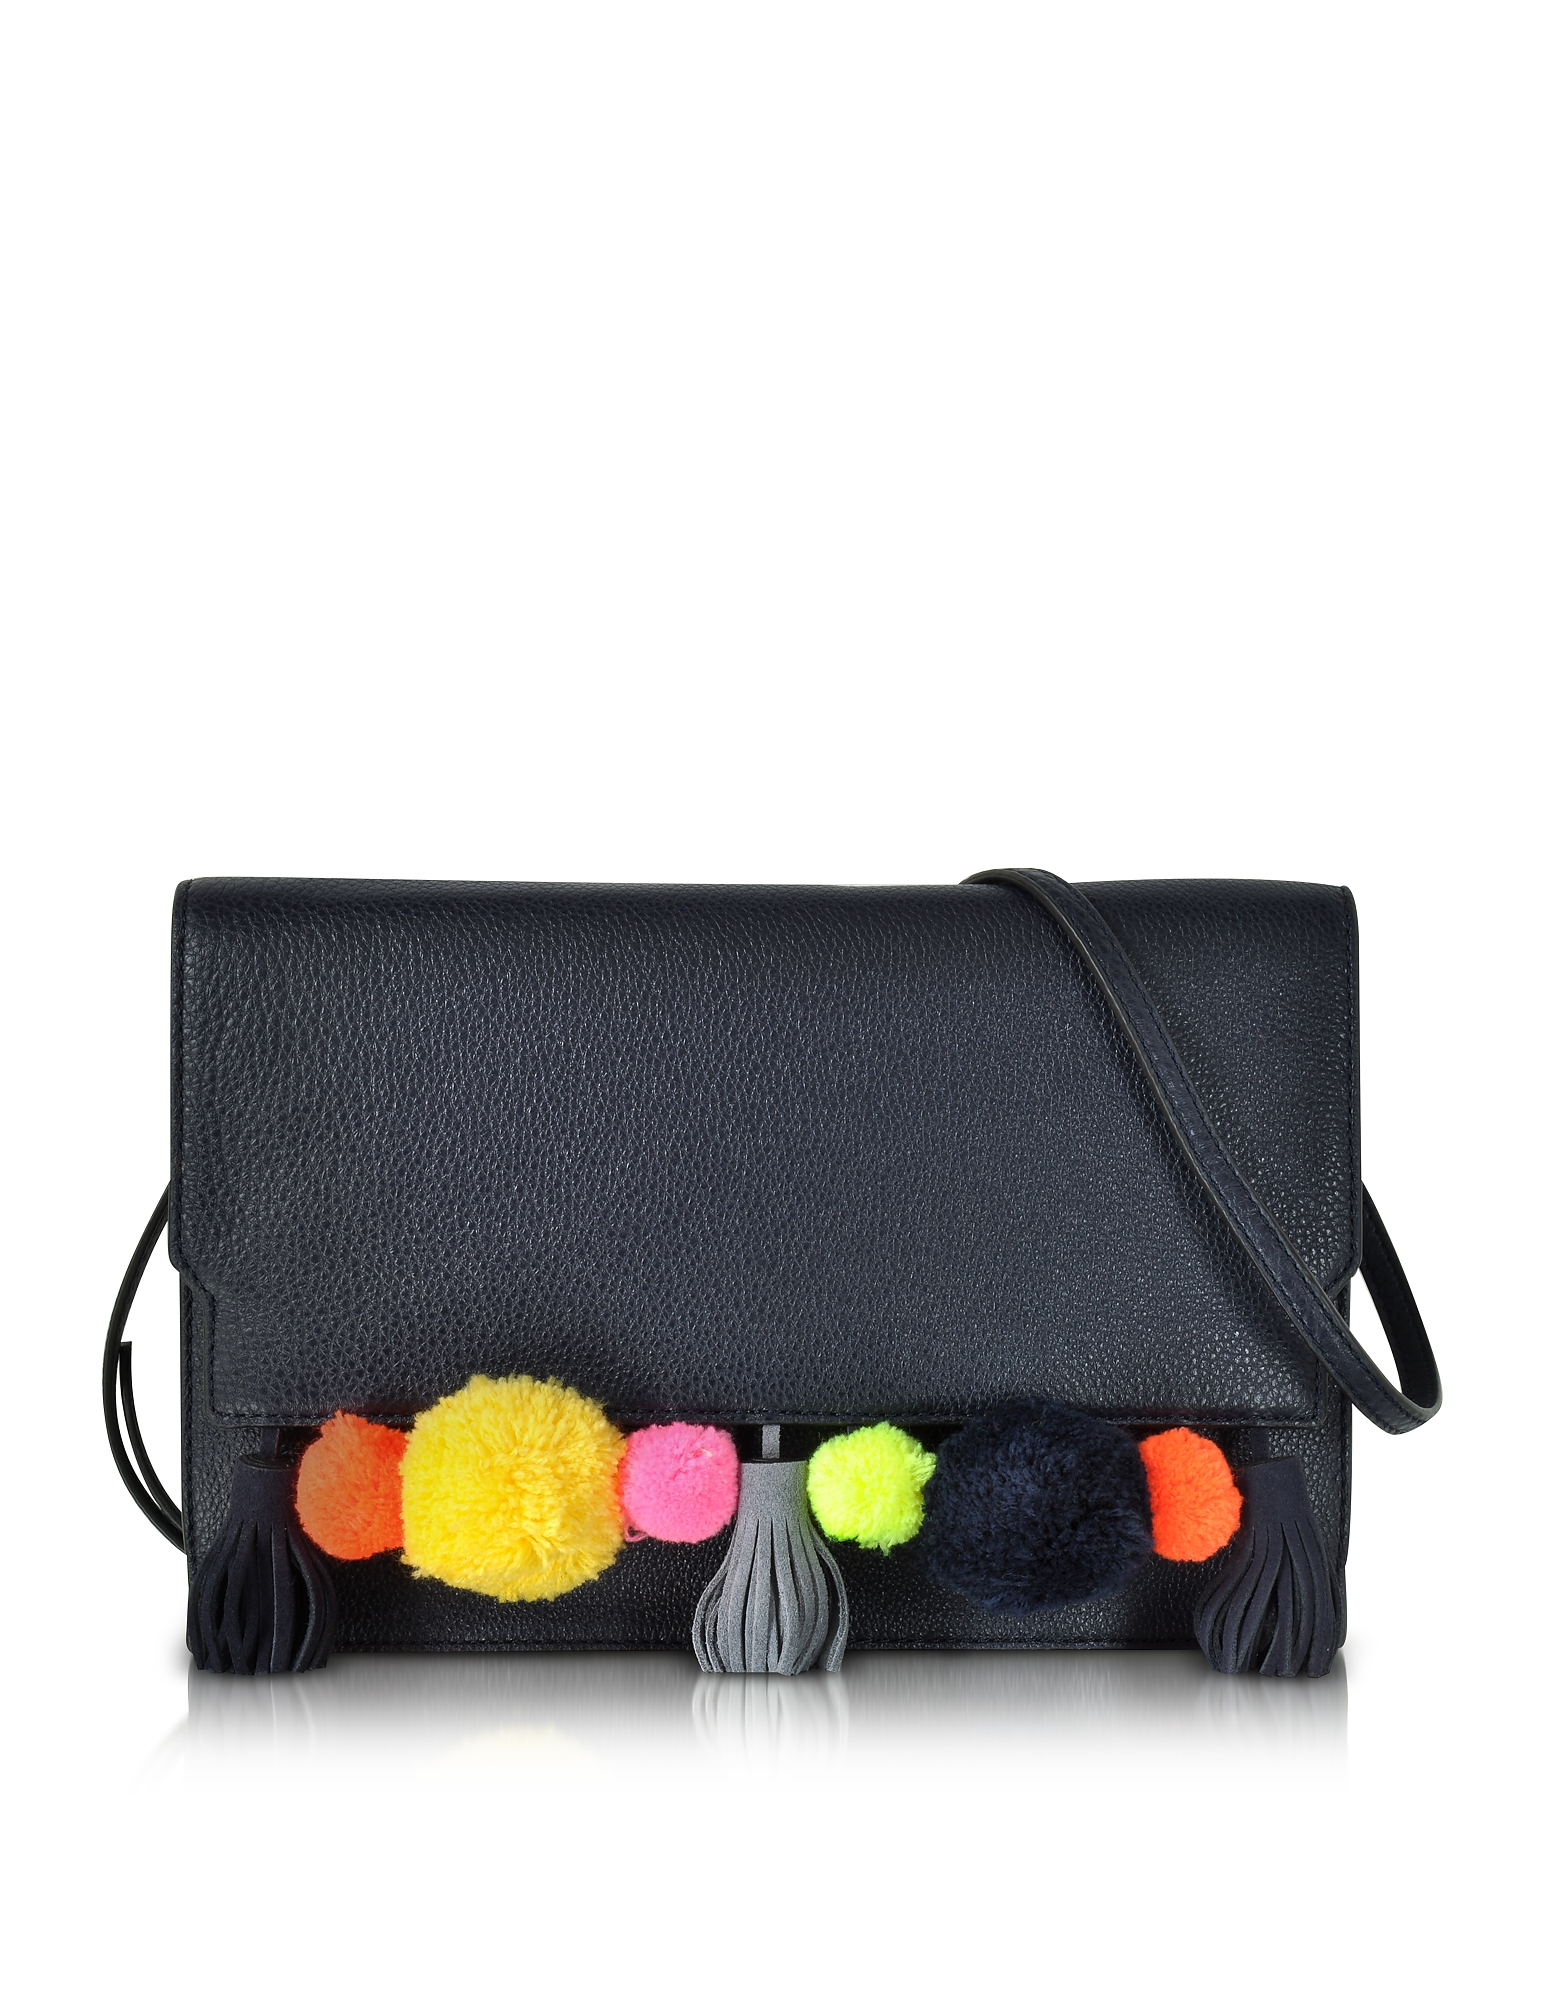 Rebecca Minkoff Pom Pom Moon Leather Sofia Clutch Crossbody